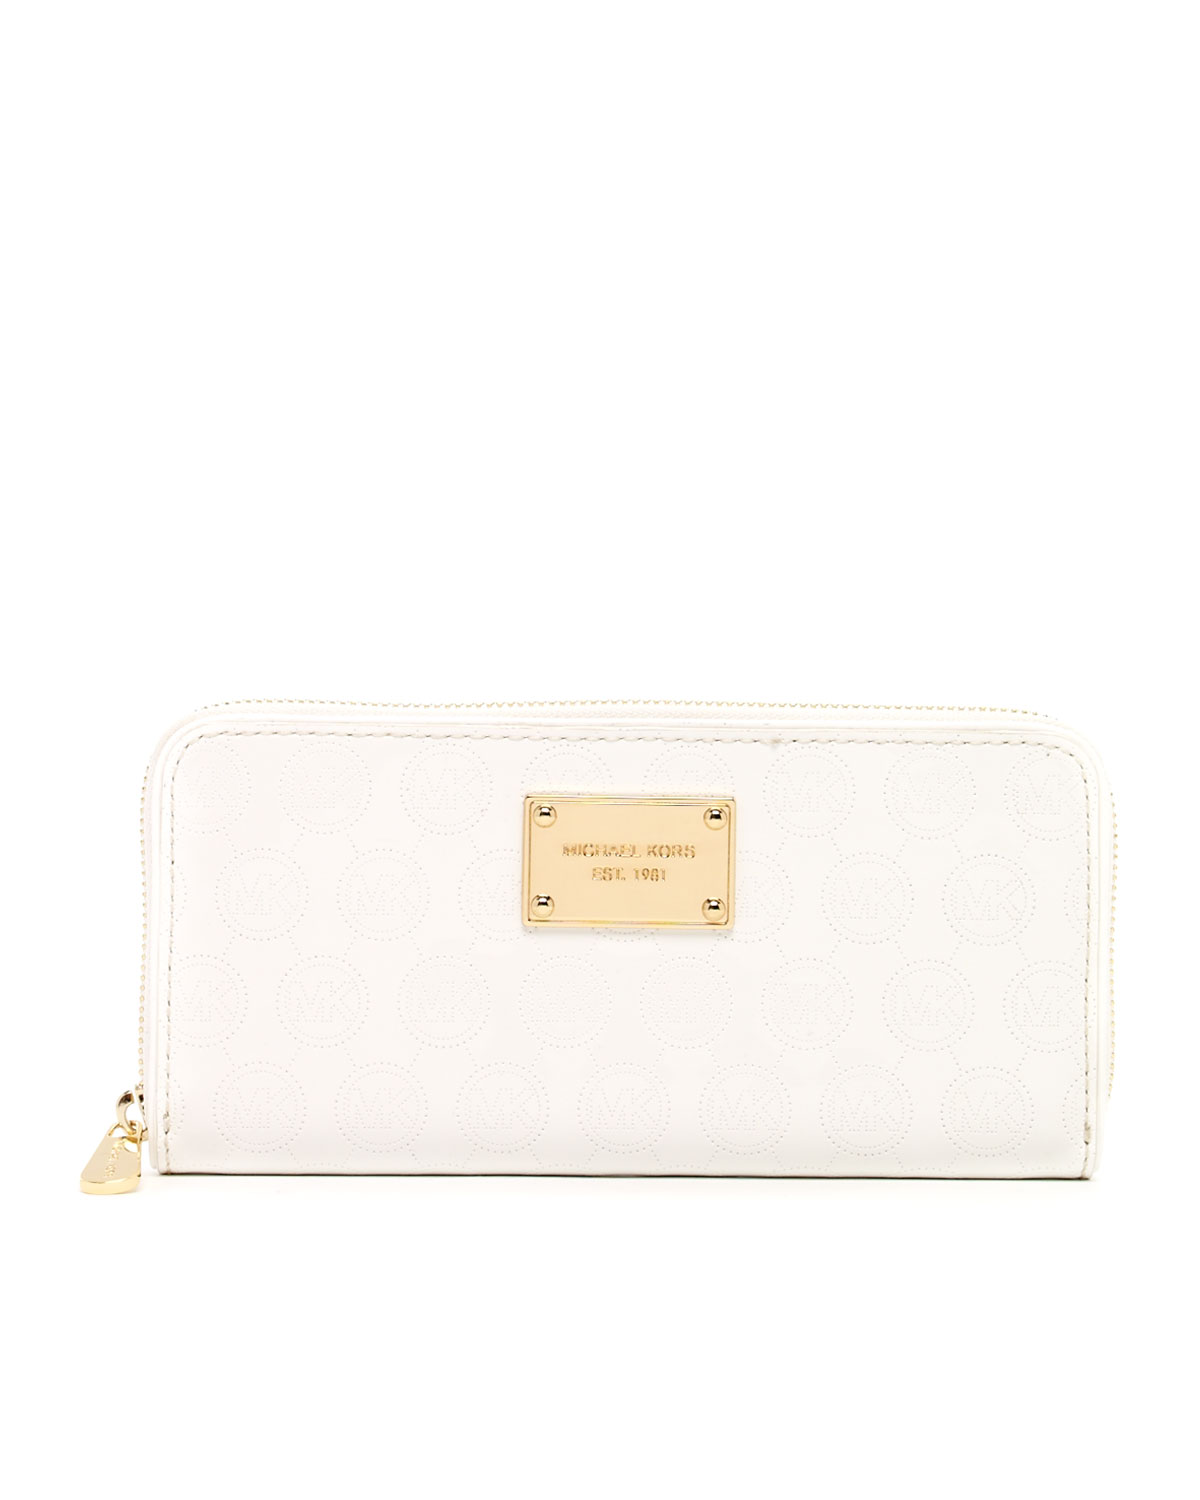 73dad7f0b8ff monogram leather large flap continental wallet, white